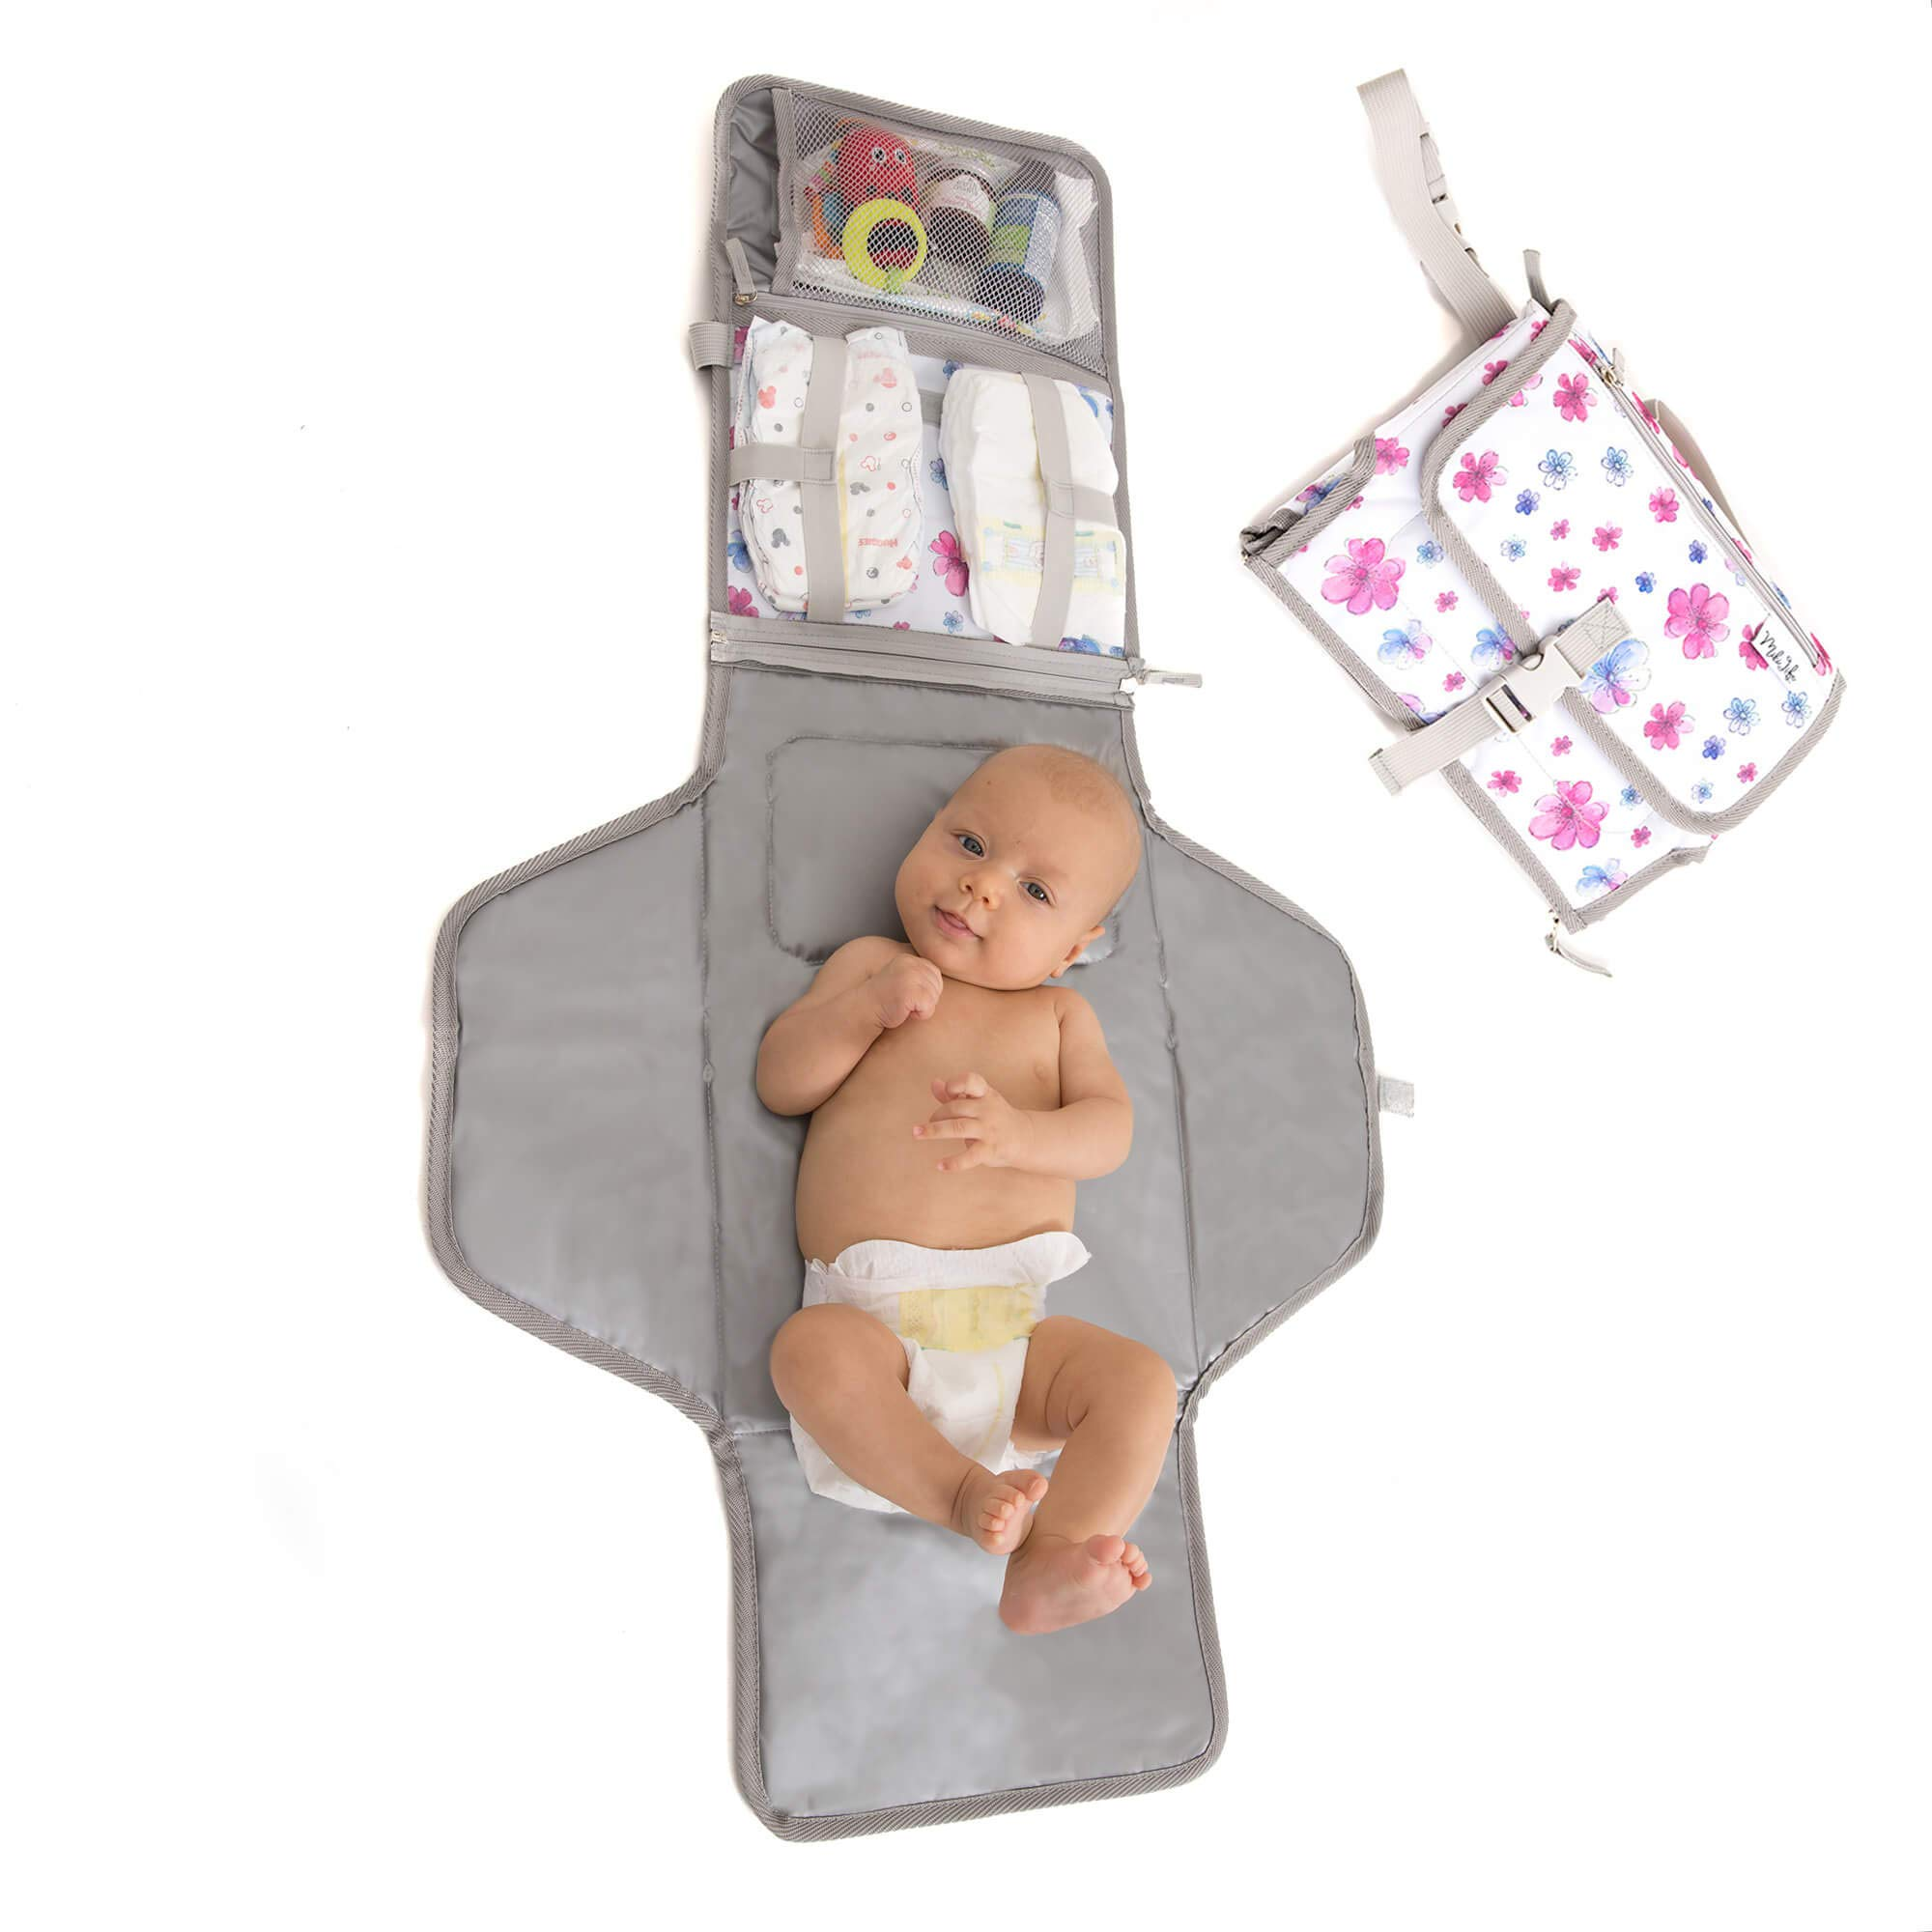 Baby Portable Changing Pad | Lightweight Travel Diaper Station Kit with Waterproof and Cushioned Pad | Foldable Pad with Pockets | Changing Organizer Bag for Toddlers Infants & Newborns | White by MikiLife